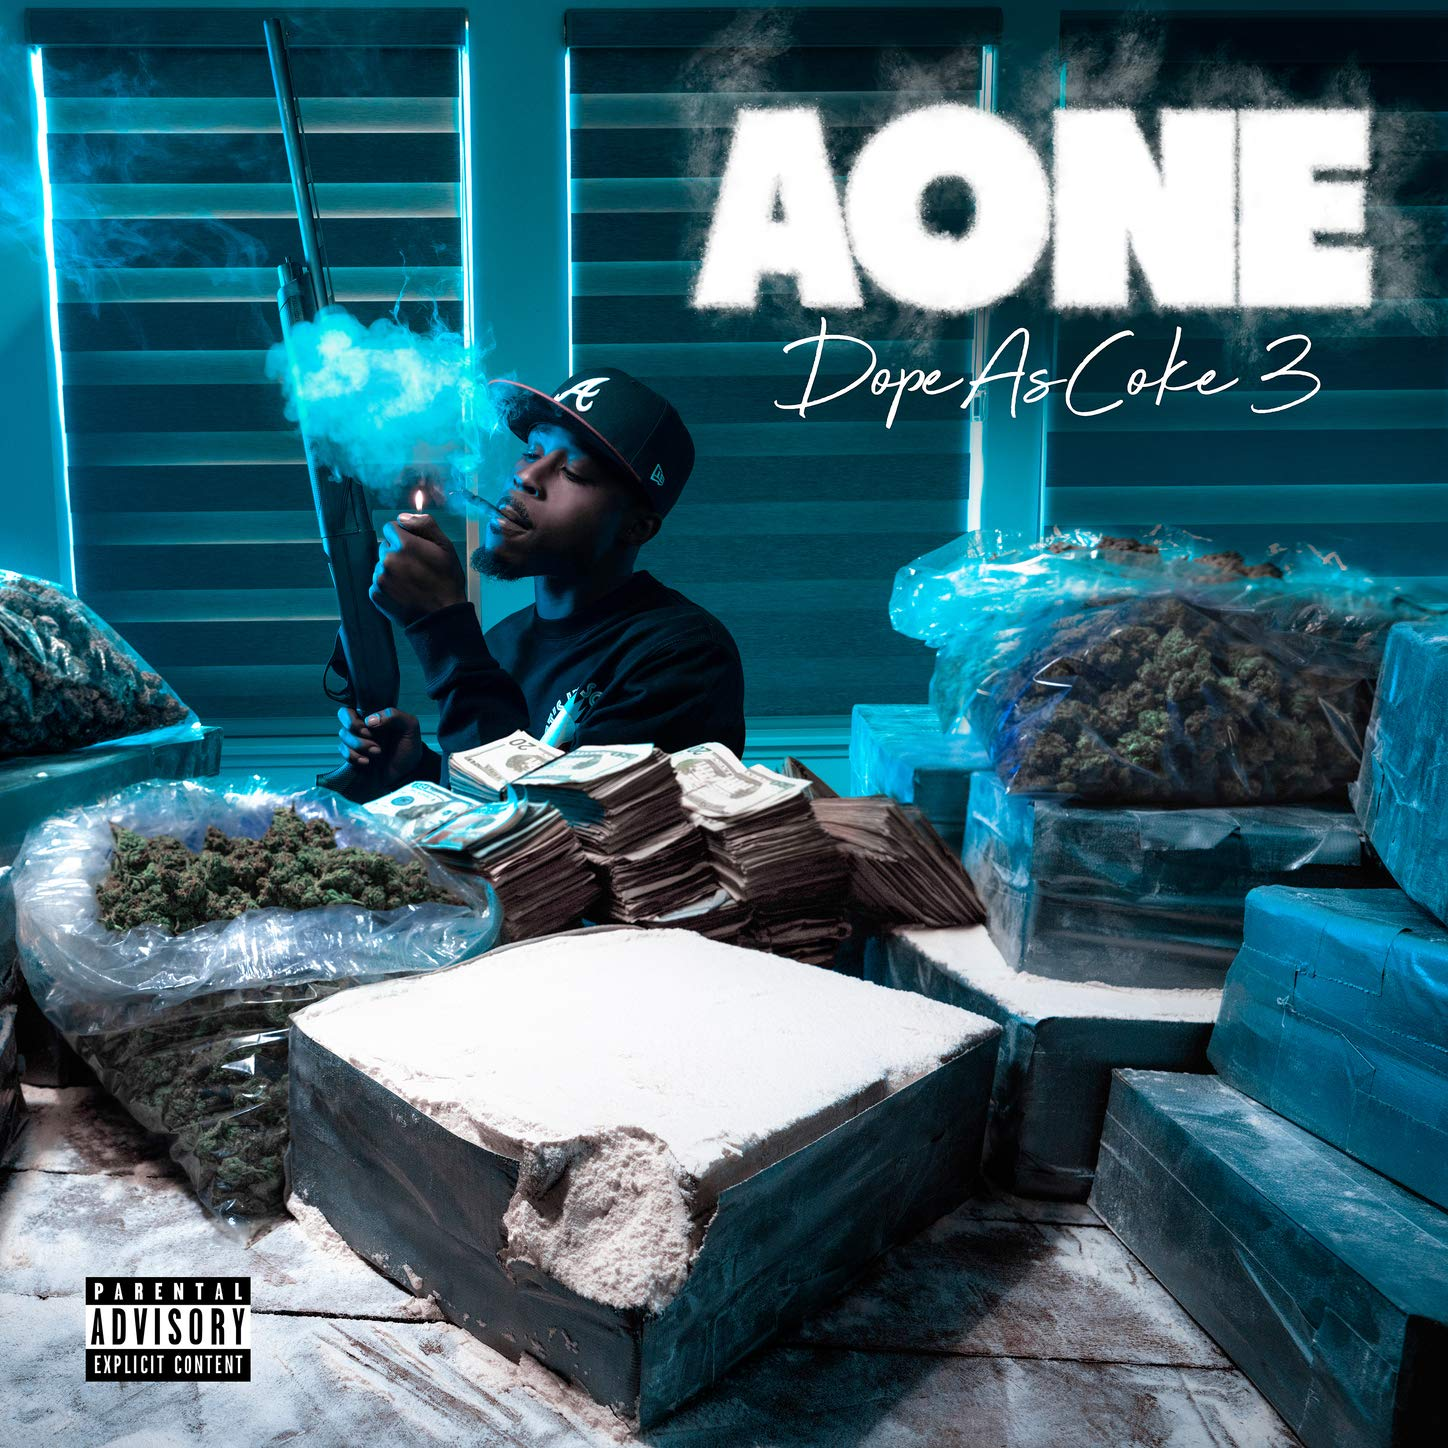 AOne - Dope As Coke 3 (2020) [FLAC] Download